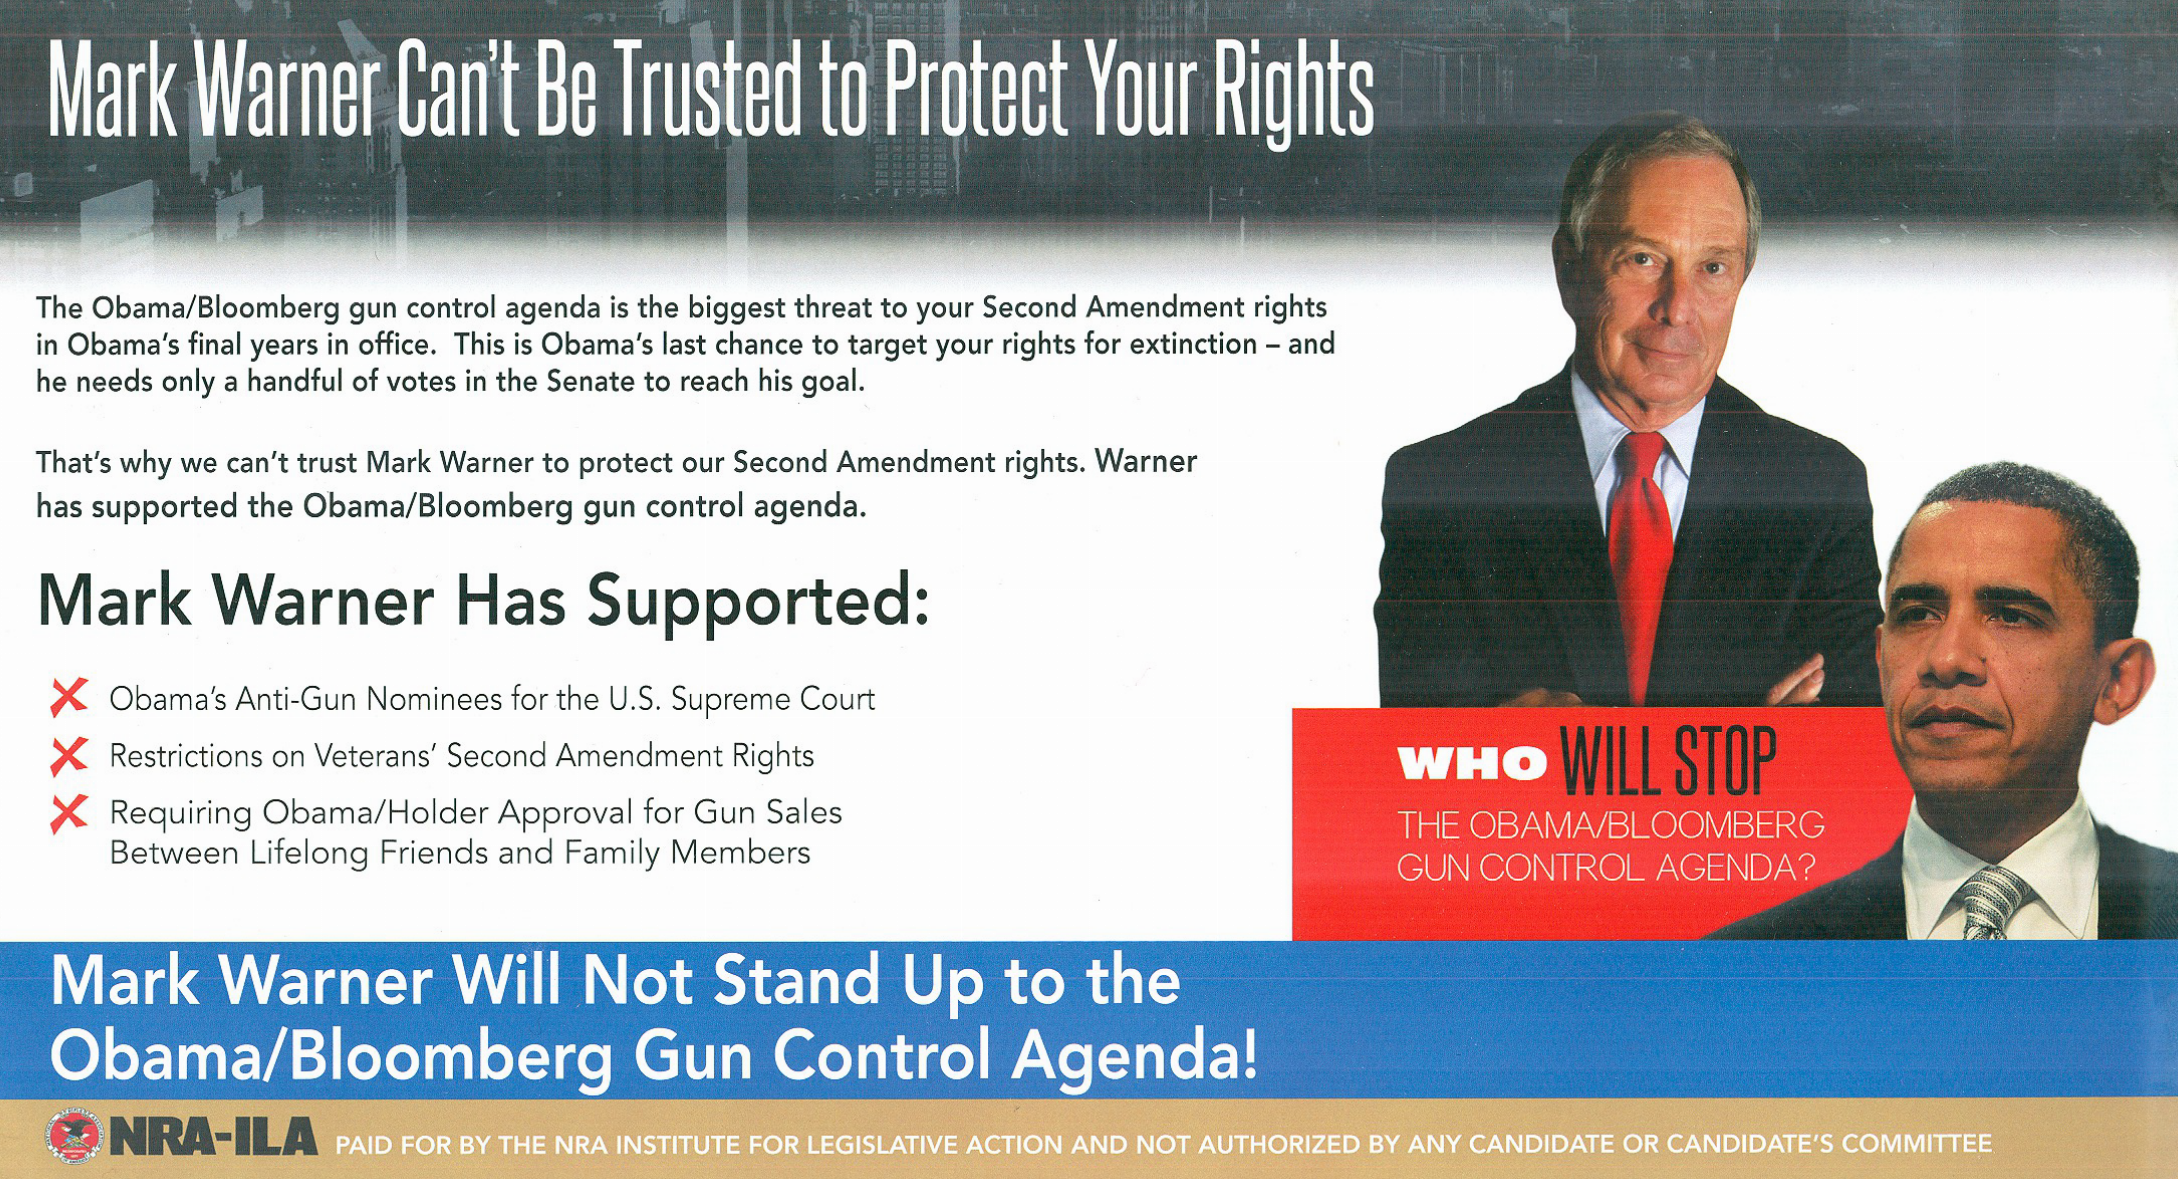 Nra Says Warner Backed Restrictions On Veteran Gun Rights